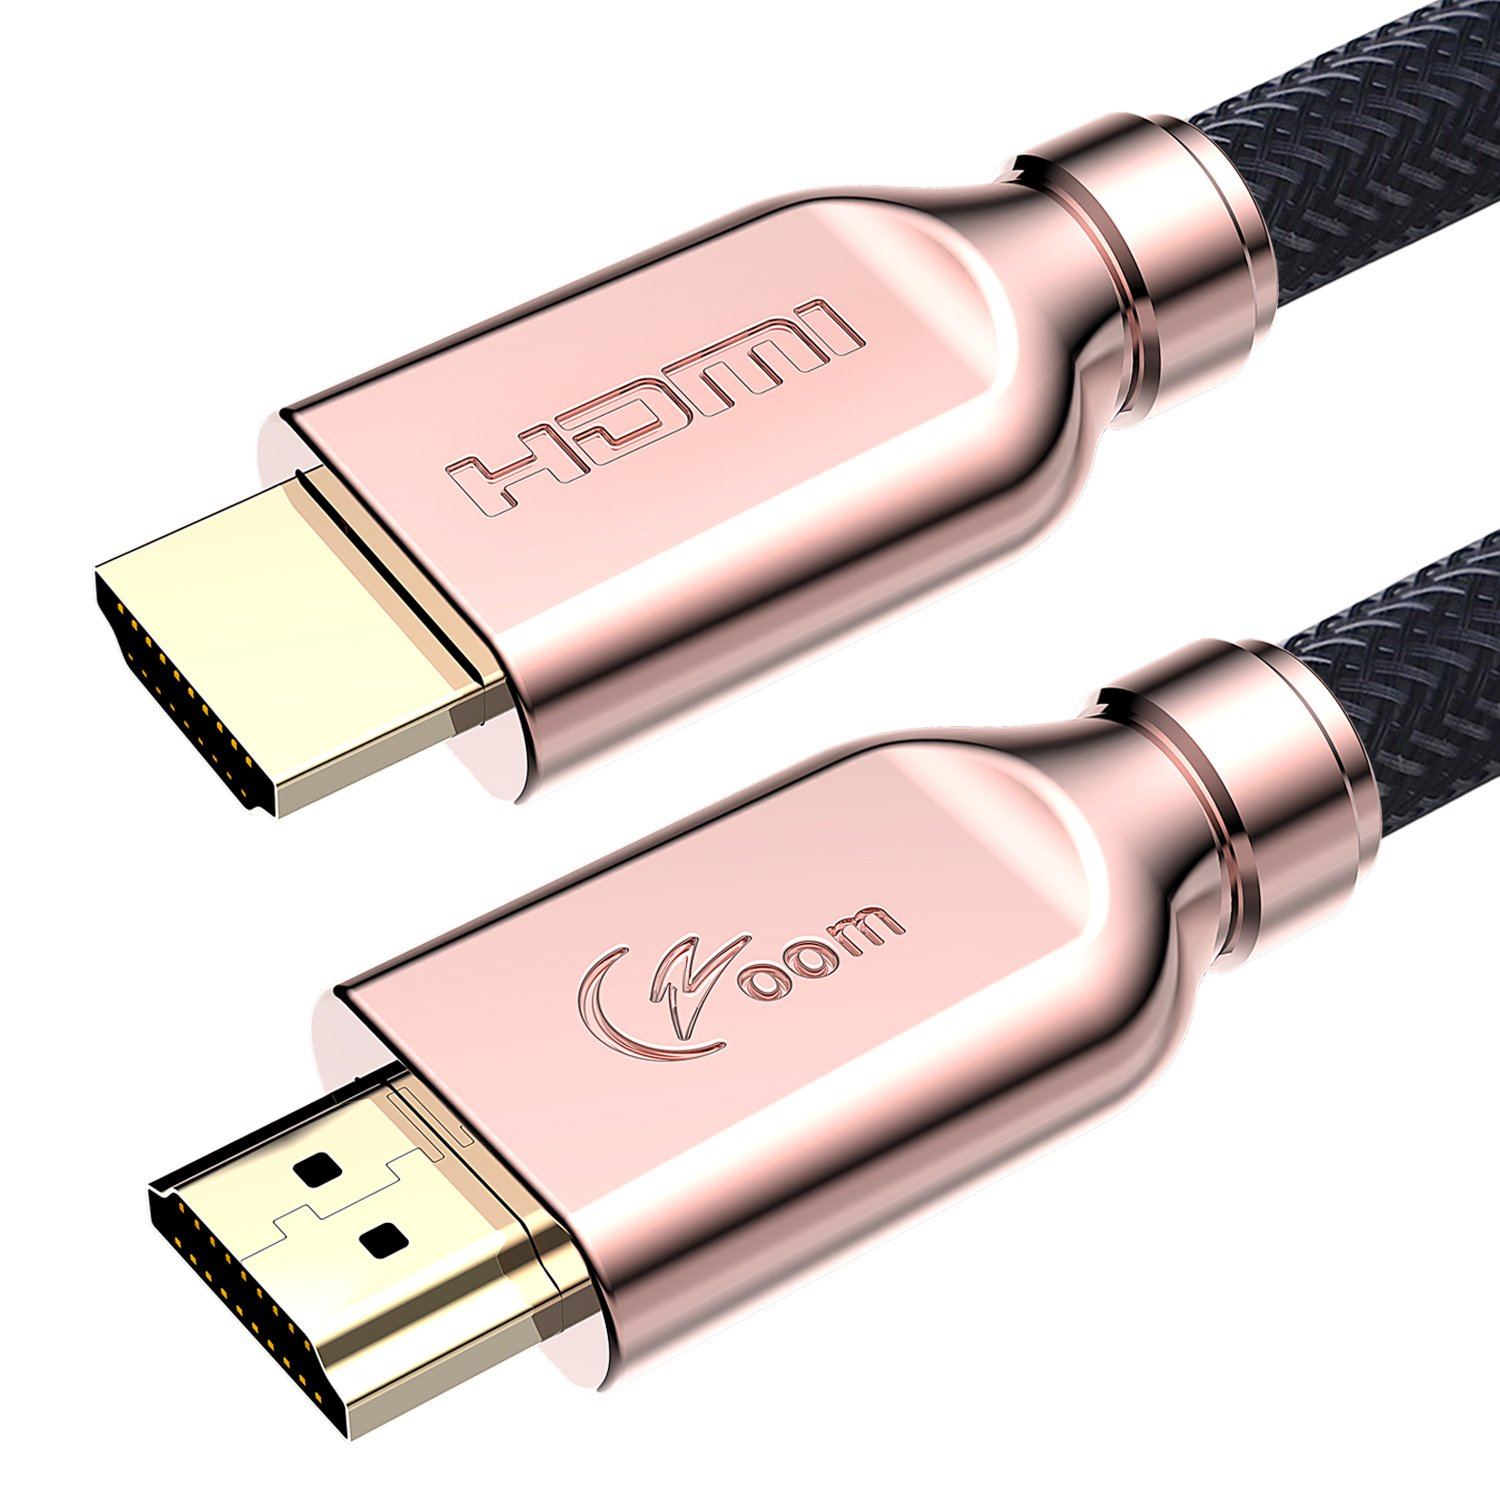 4K HDMI Cable 3 Feet - Ultra High Speed 18Gbps HDMI 2.0 Cable - 28AWG Braided HDMI Cord - Gold Plated Connectors - Supports 4K 60Hz HDR UHD 4:4:4, 1080p, 3D, HDCP 2.2, Ethernet - Audio Return